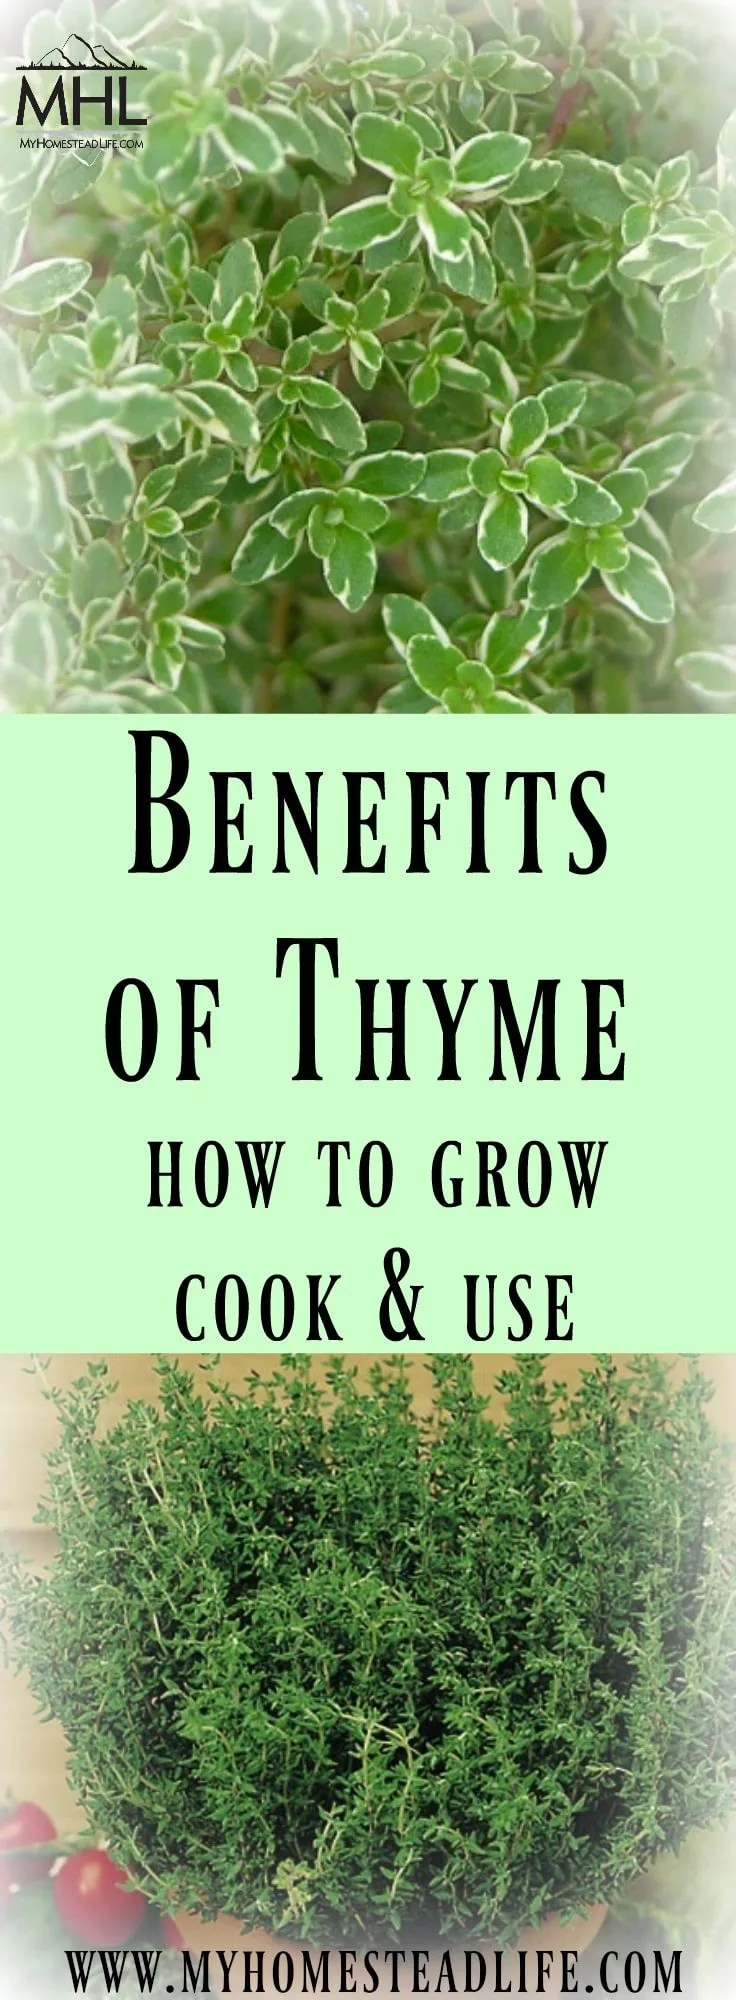 Benefits of Thyme how to grow, cook and use